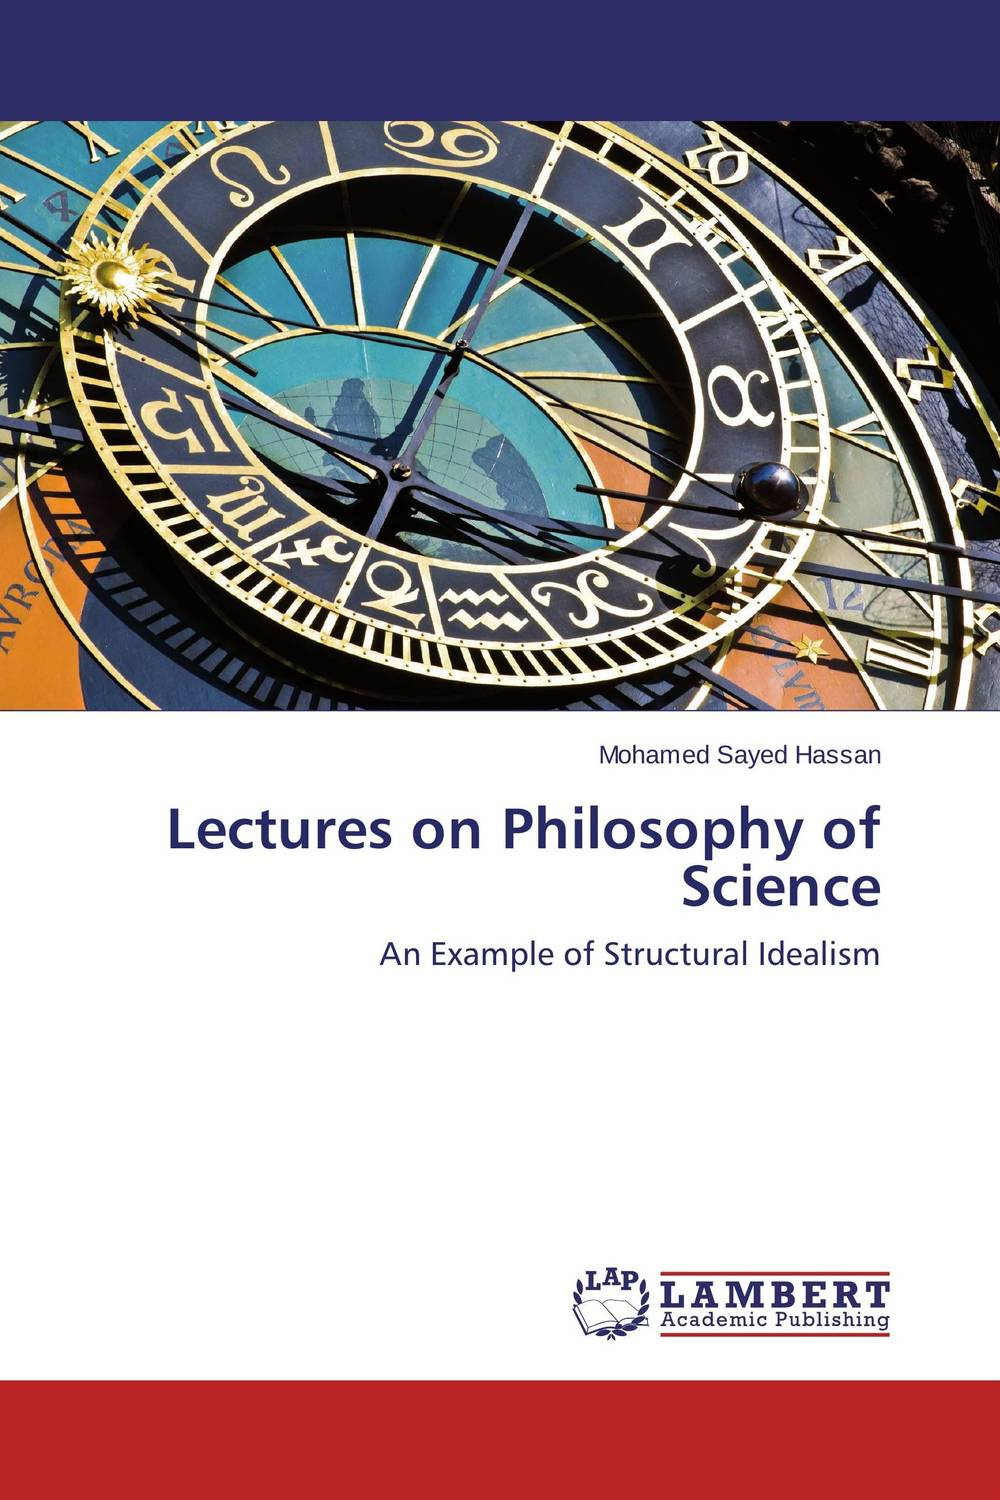 Lectures on Philosophy of Science